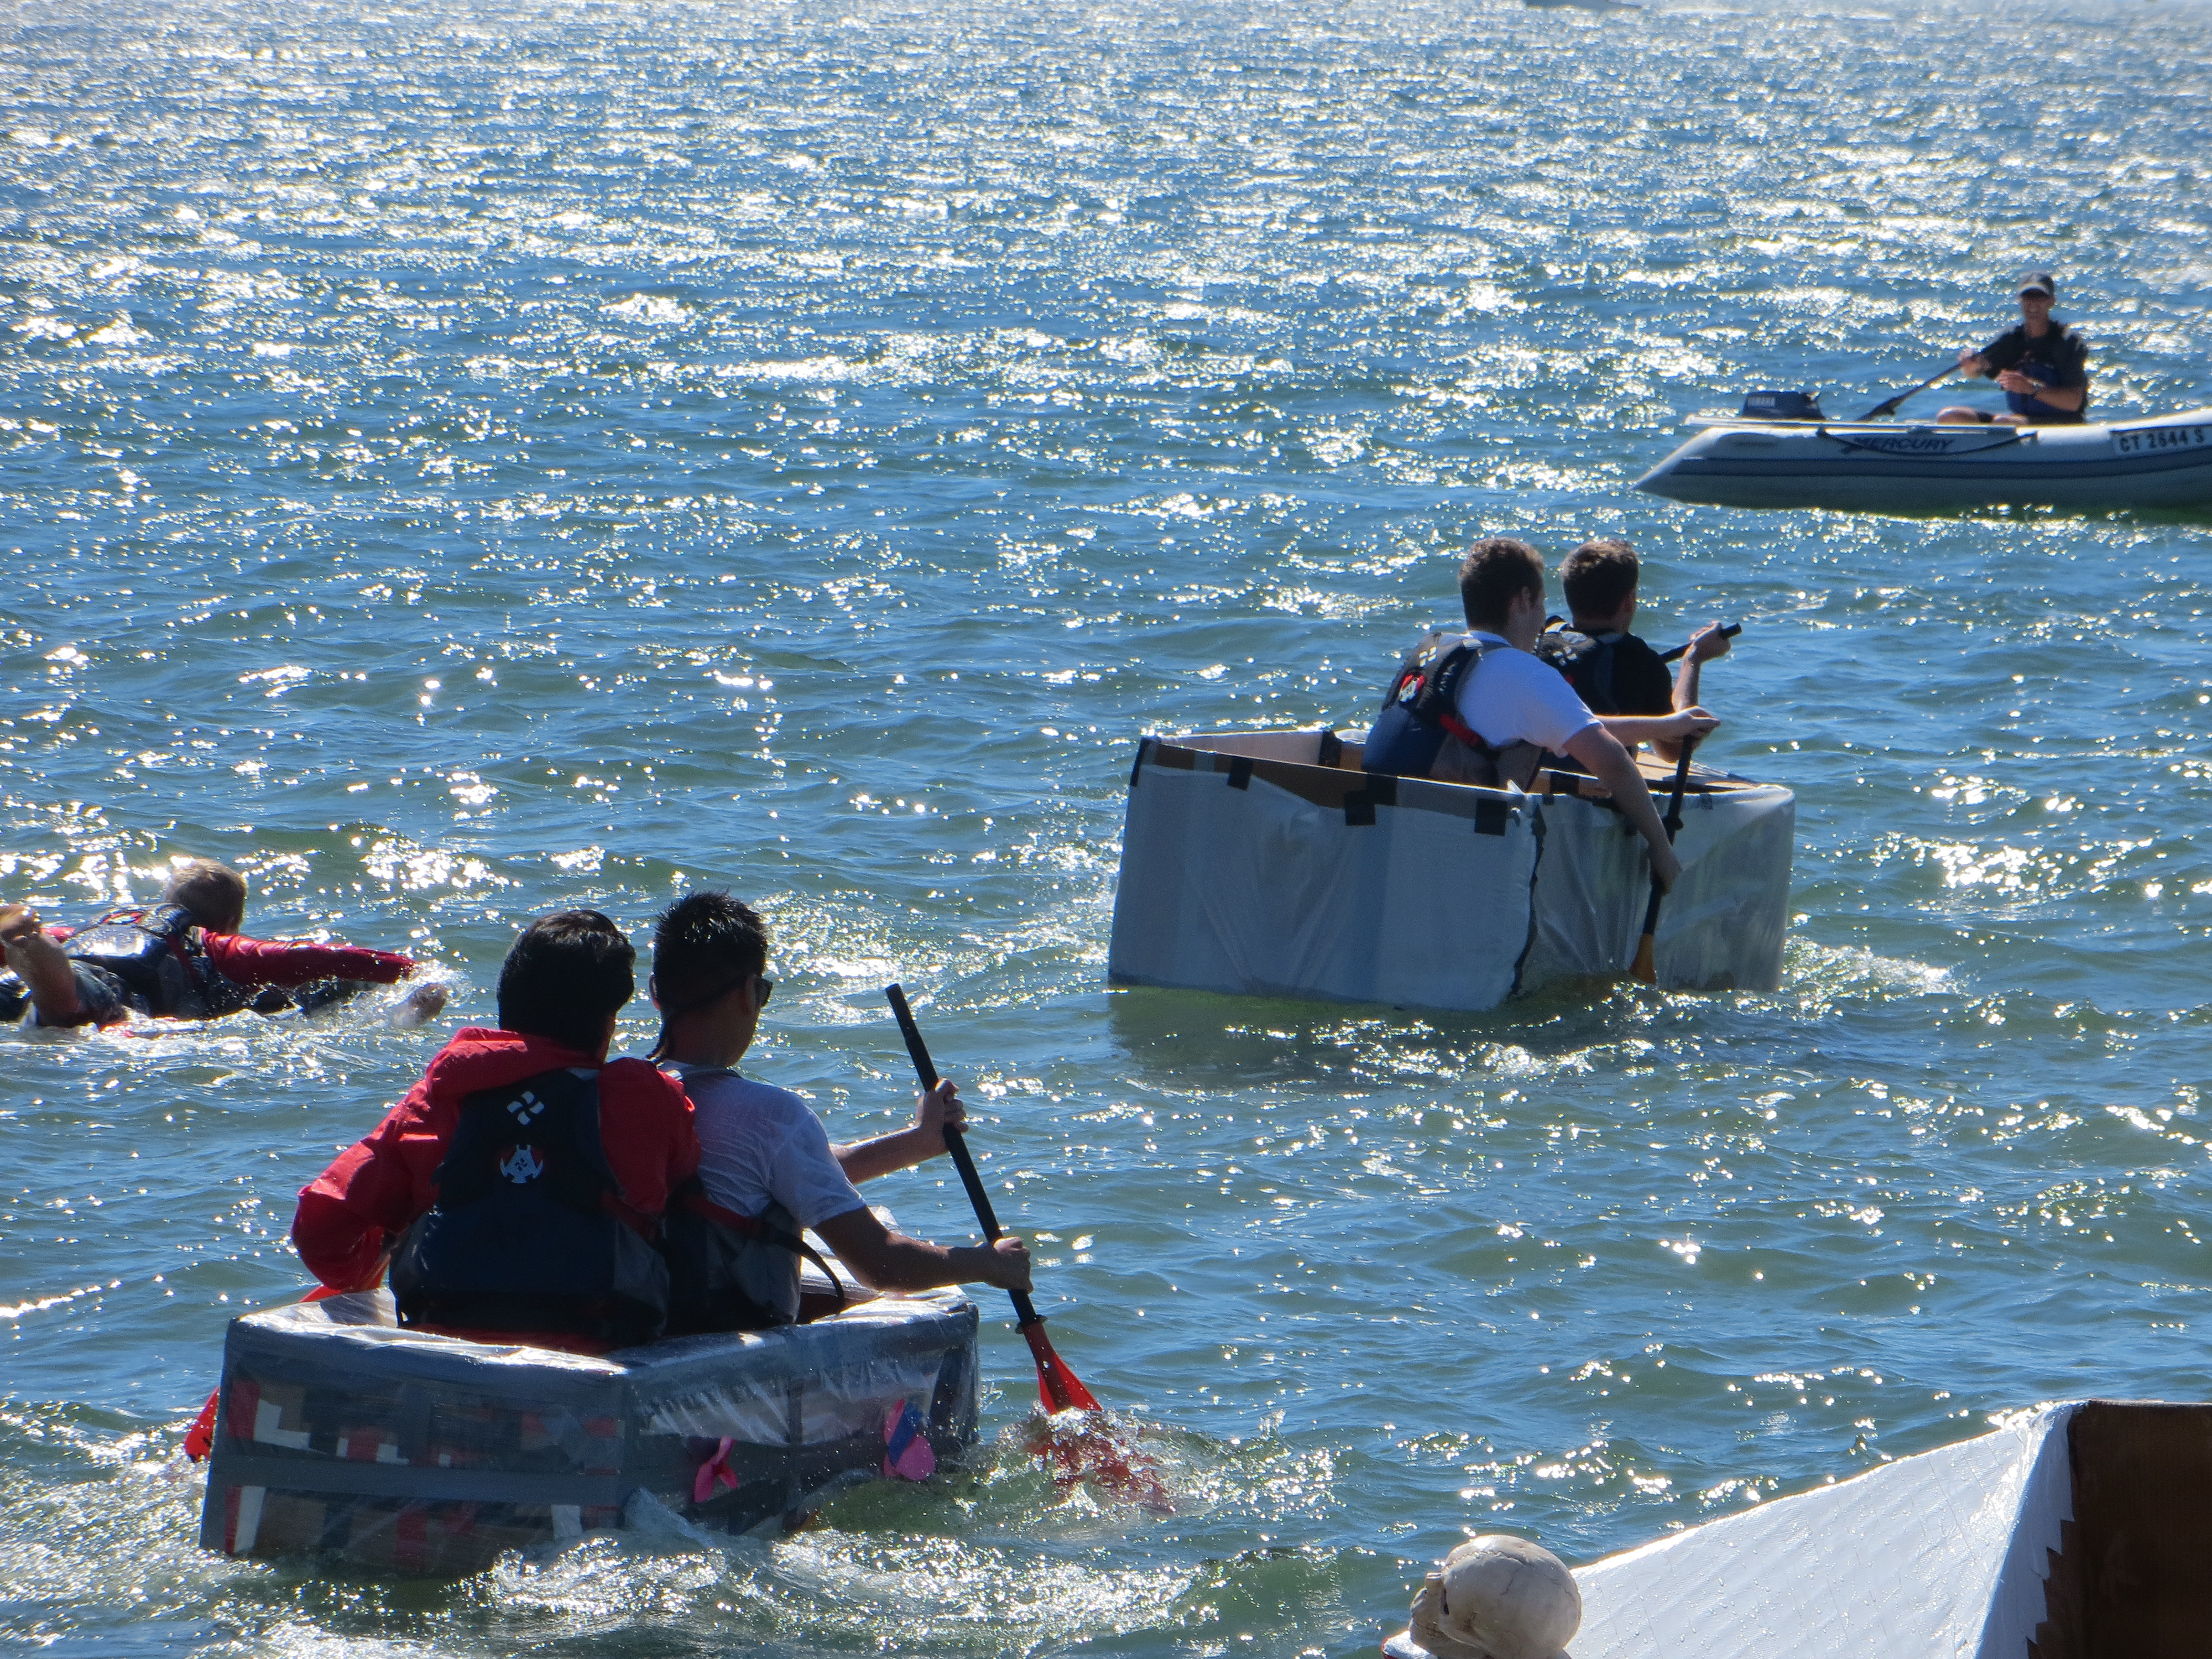 Action scene from the Cardboard Boat Race